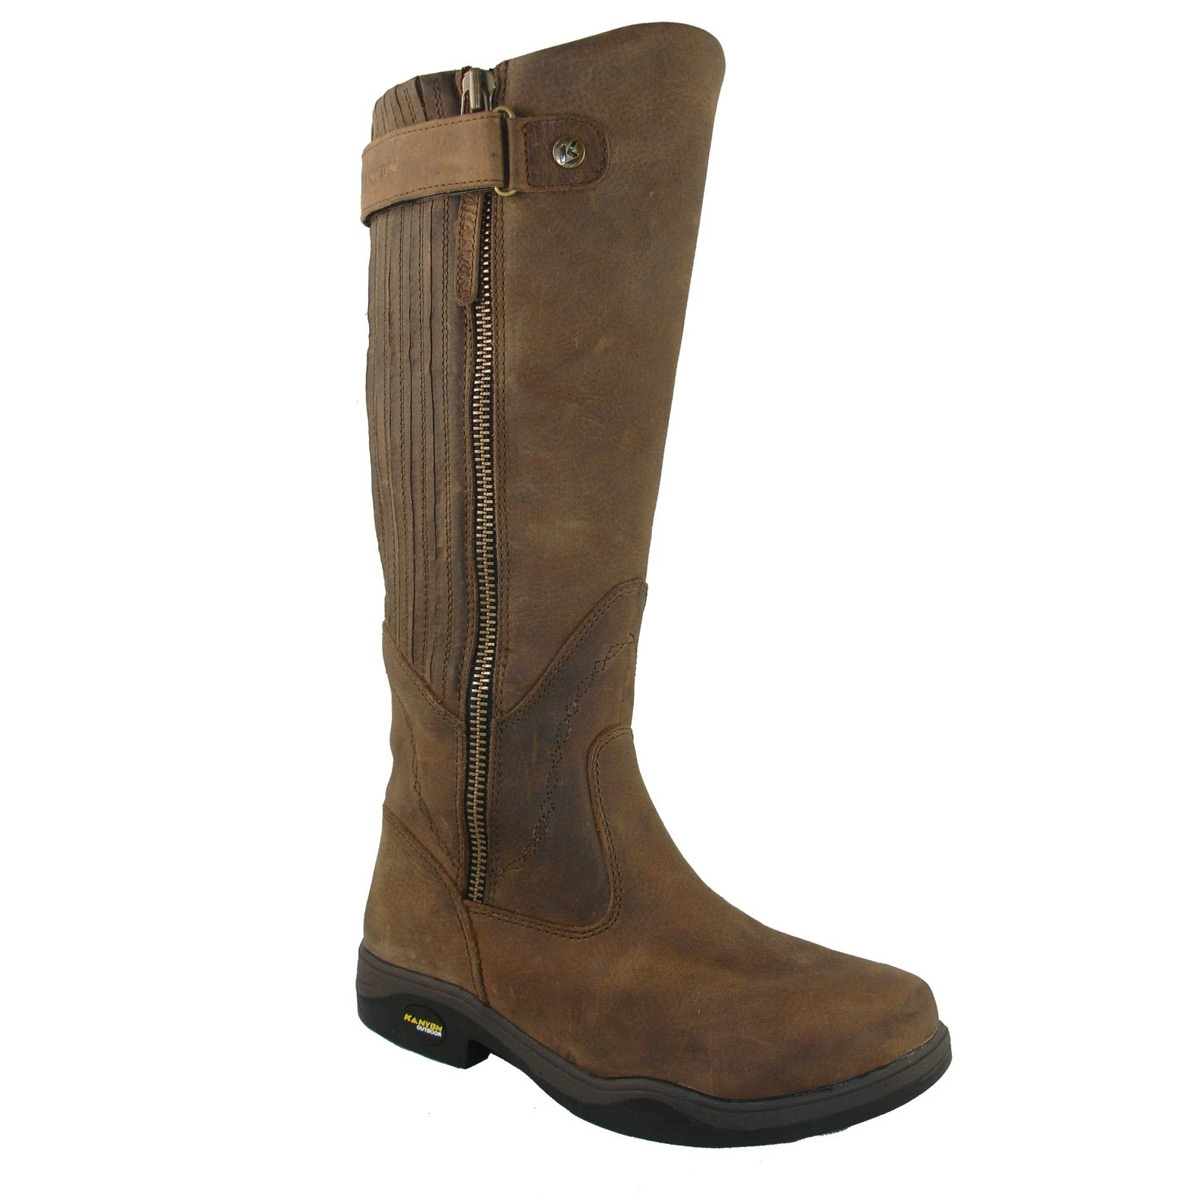 innovative design incredible prices new lifestyle Kanyon Outdoor Gorse X-Rider Boot - Super-Wide Fit (Women's) - Chocolate